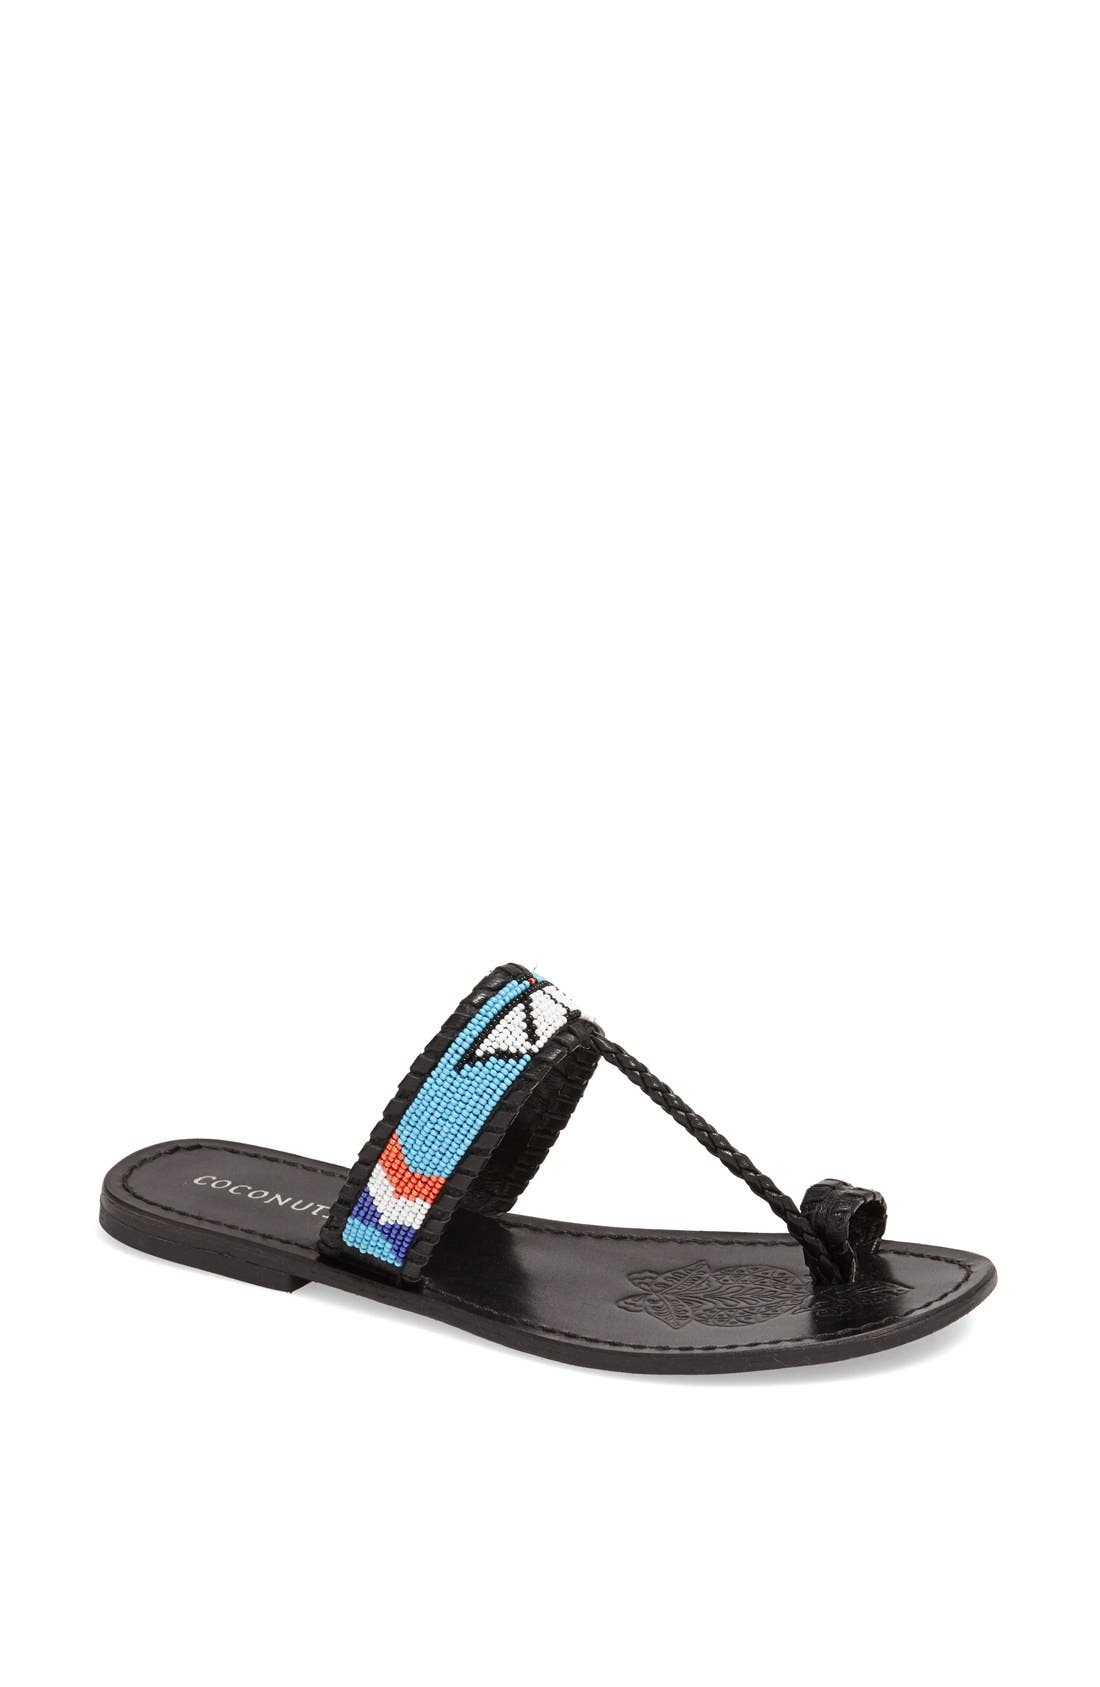 Alternate Image 1 Selected - Coconuts by Matisse Beaded Sandal